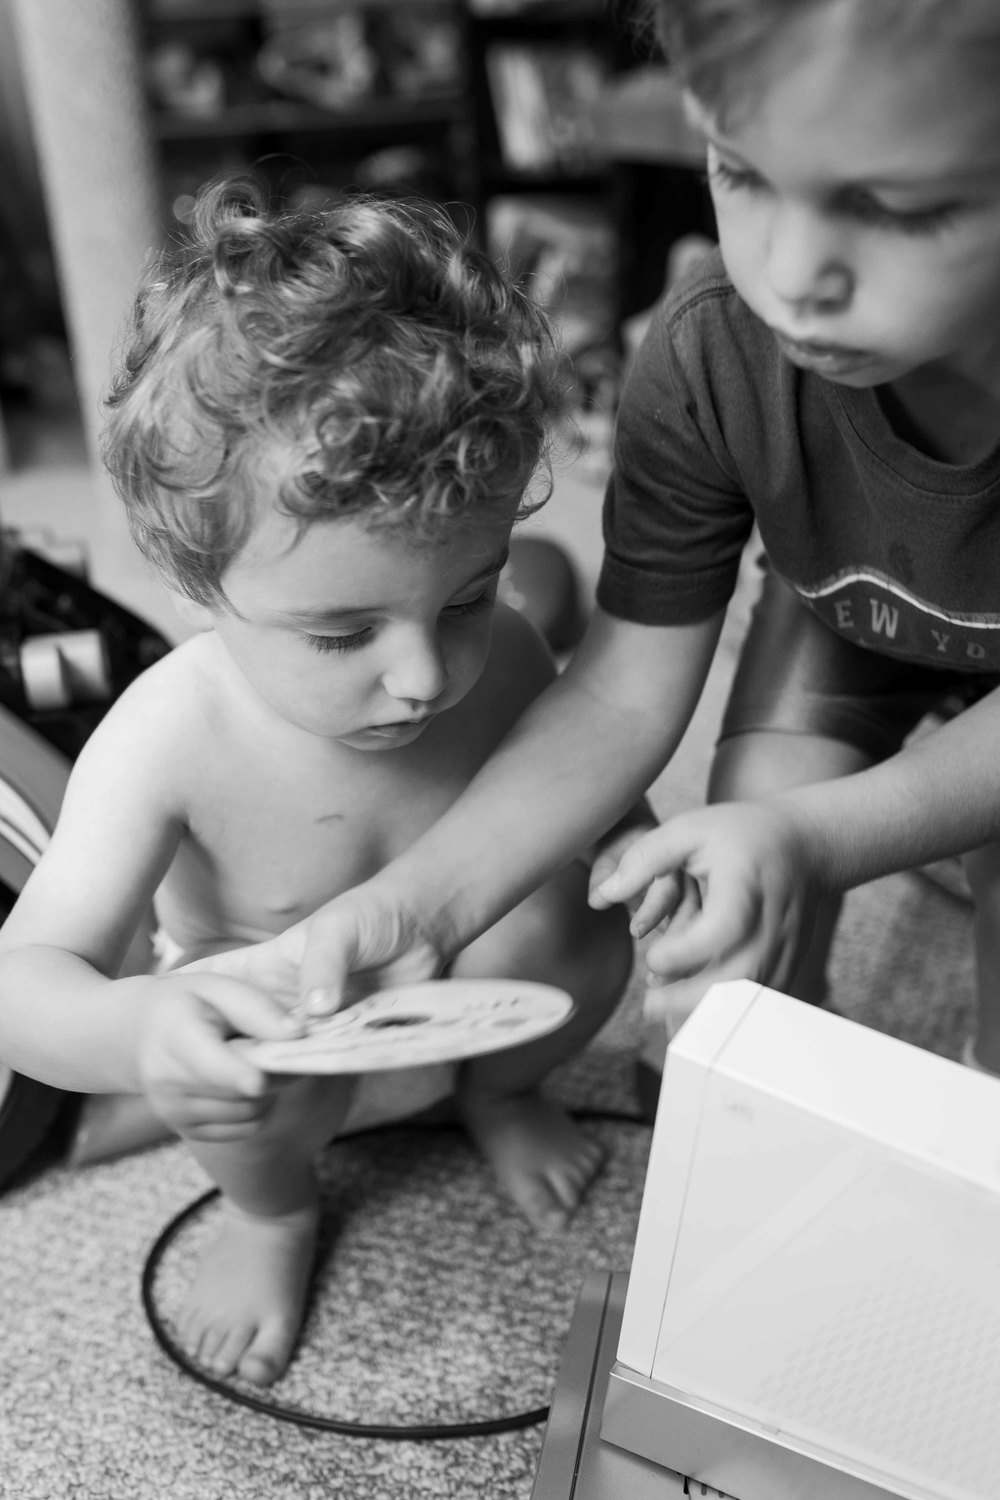 brothers playing with wii, black and white photos, documentary, oakland, erika kao